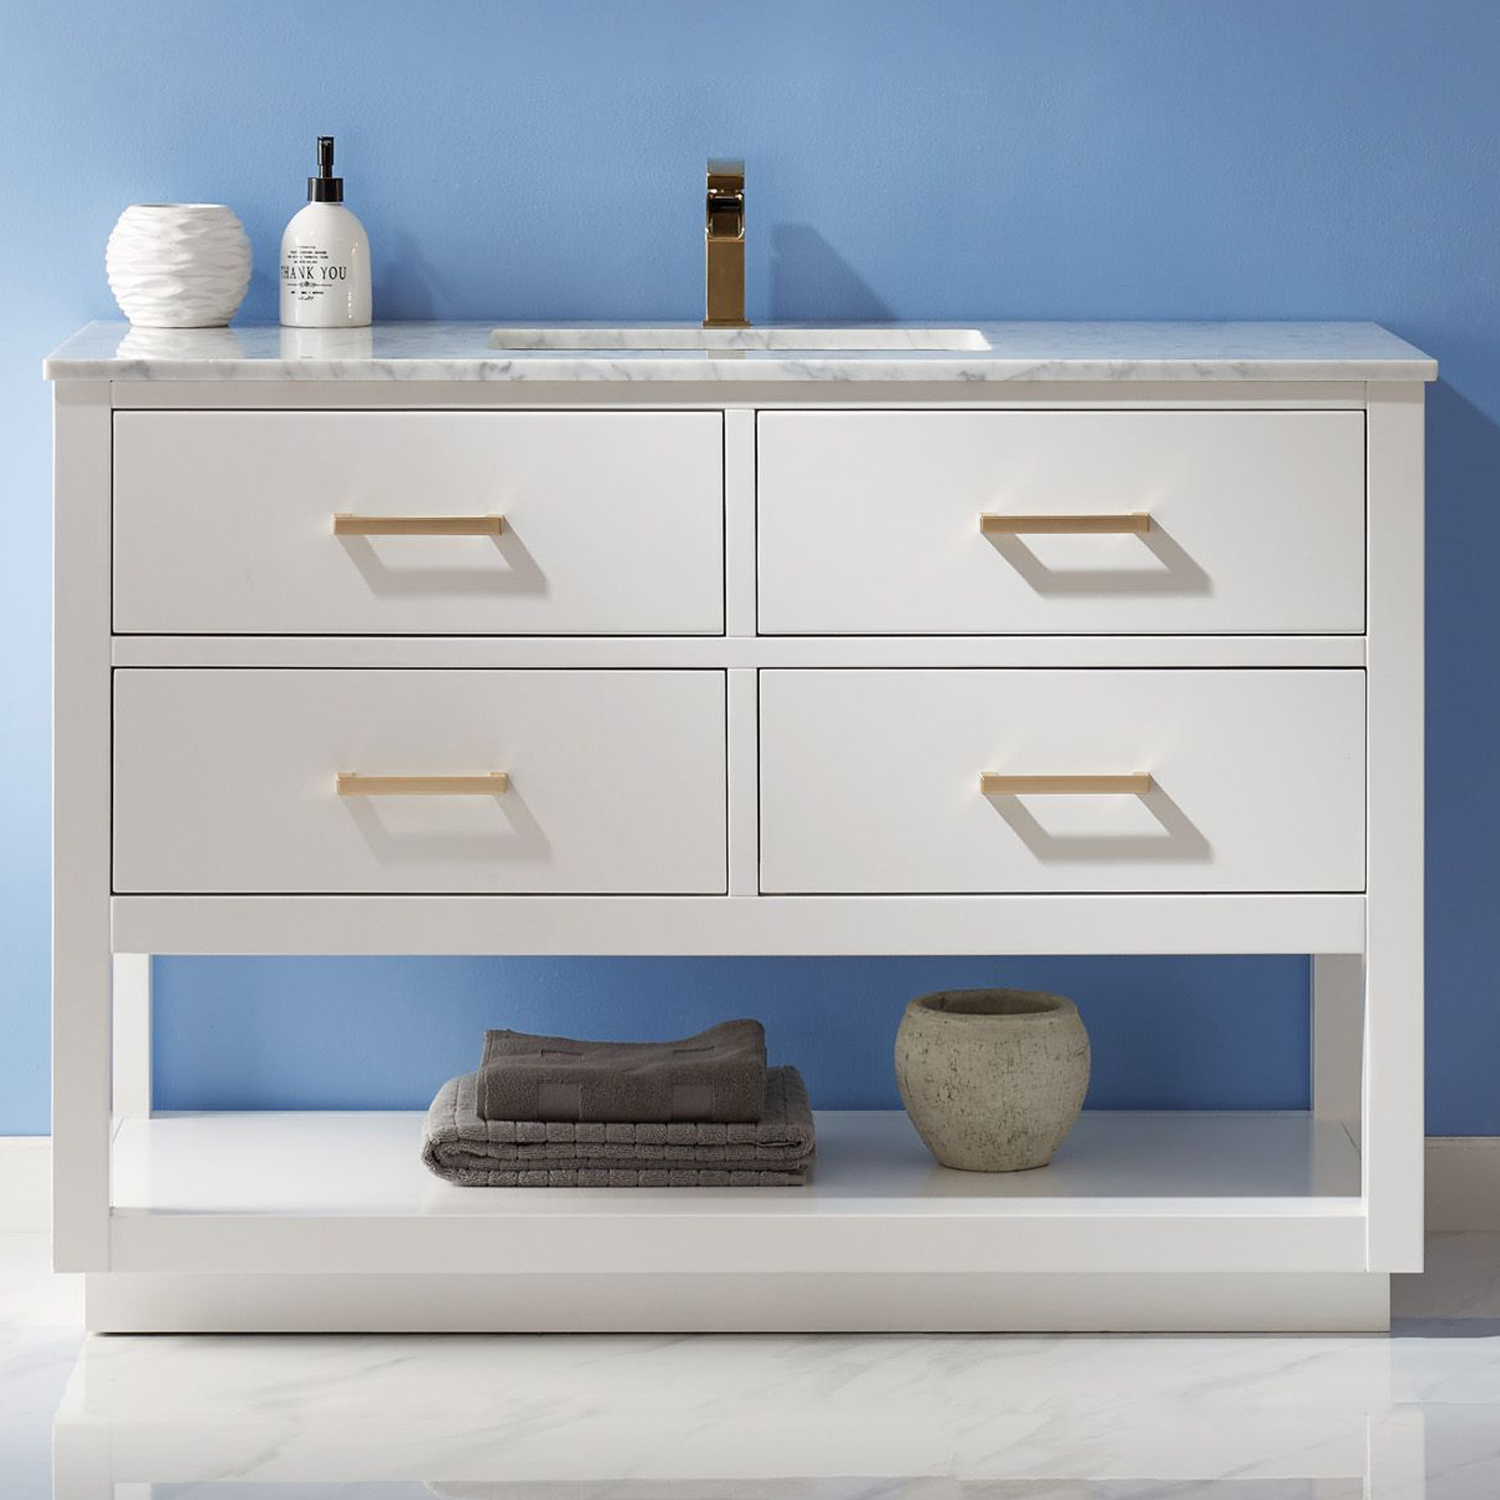 "Issac Edwards Collection 48"" Single Bathroom Vanity Set in White and Carrara White Marble Countertop with Mirror Option"